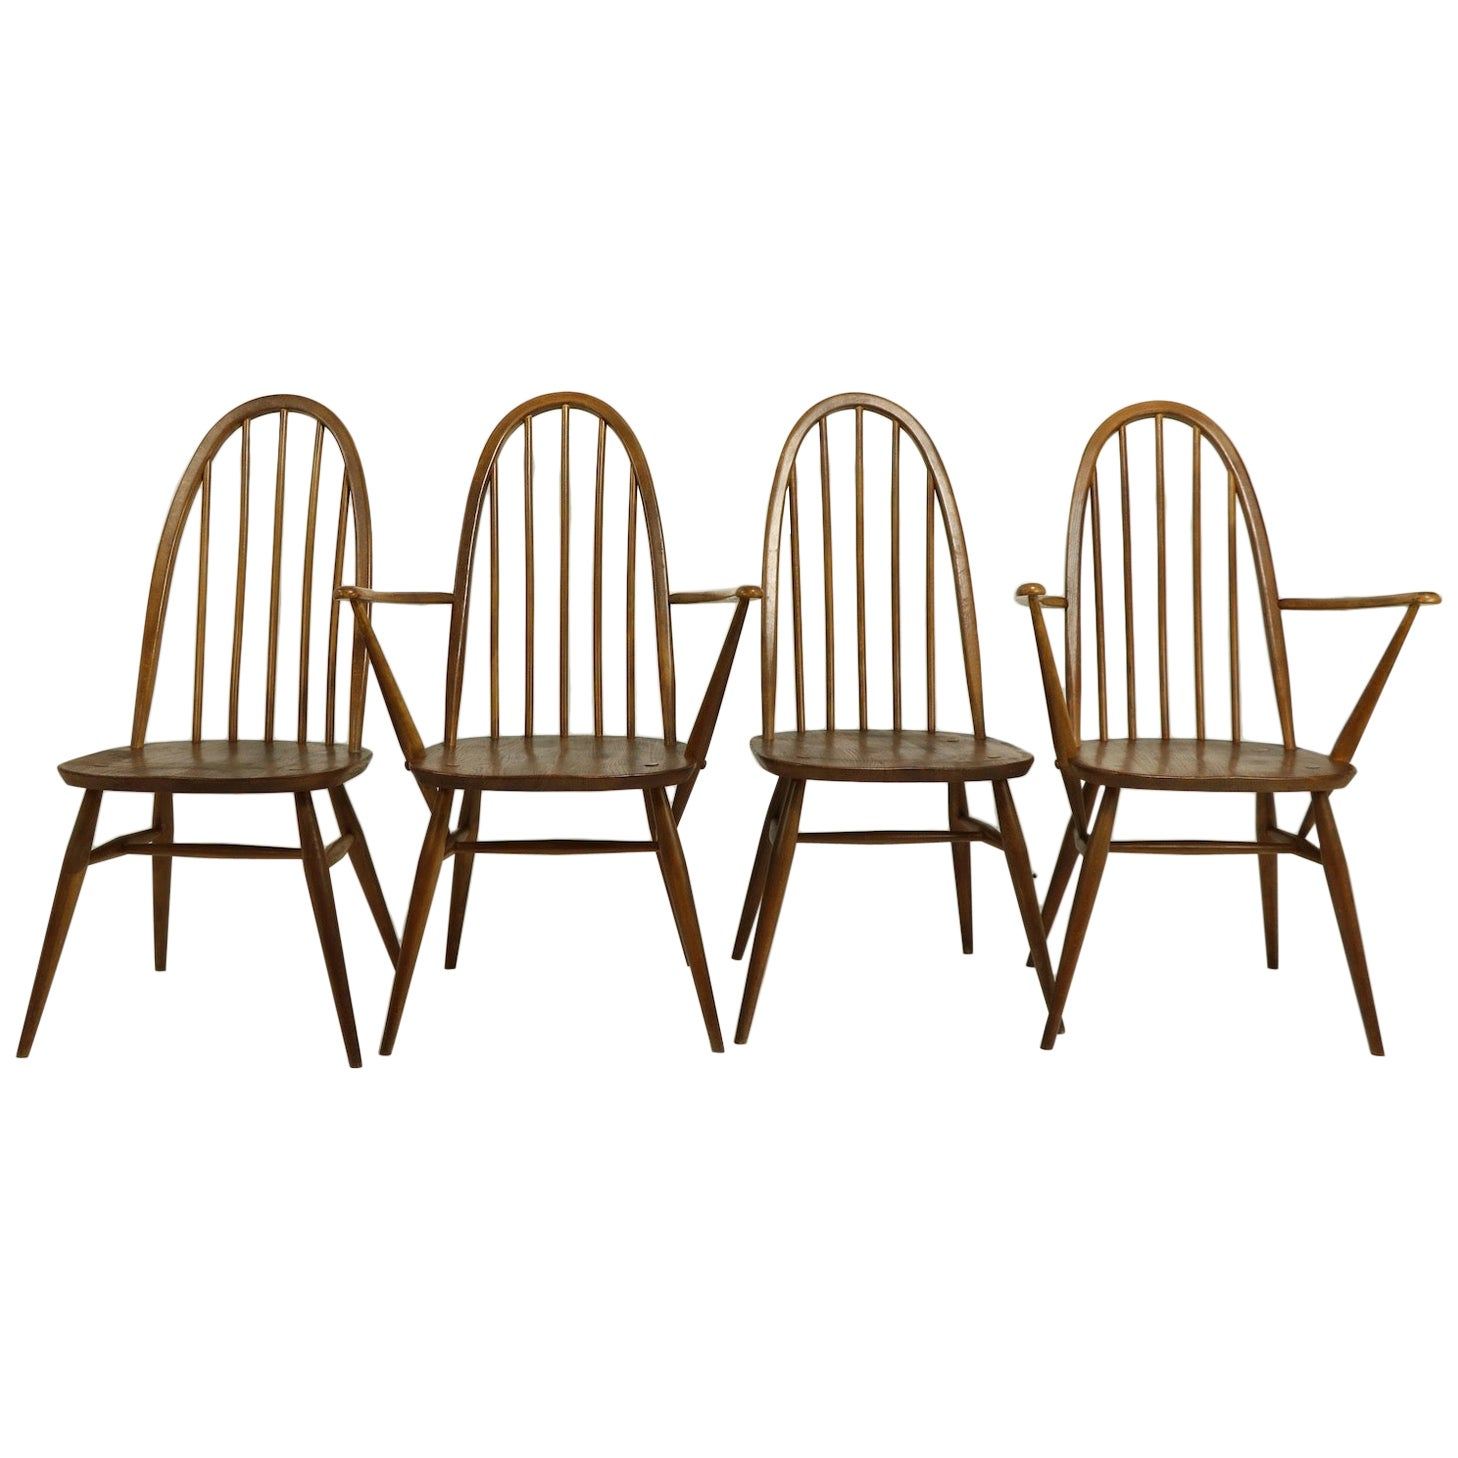 Set of 4 Dining Chairs by Lucien Ercolani for Ercol, England